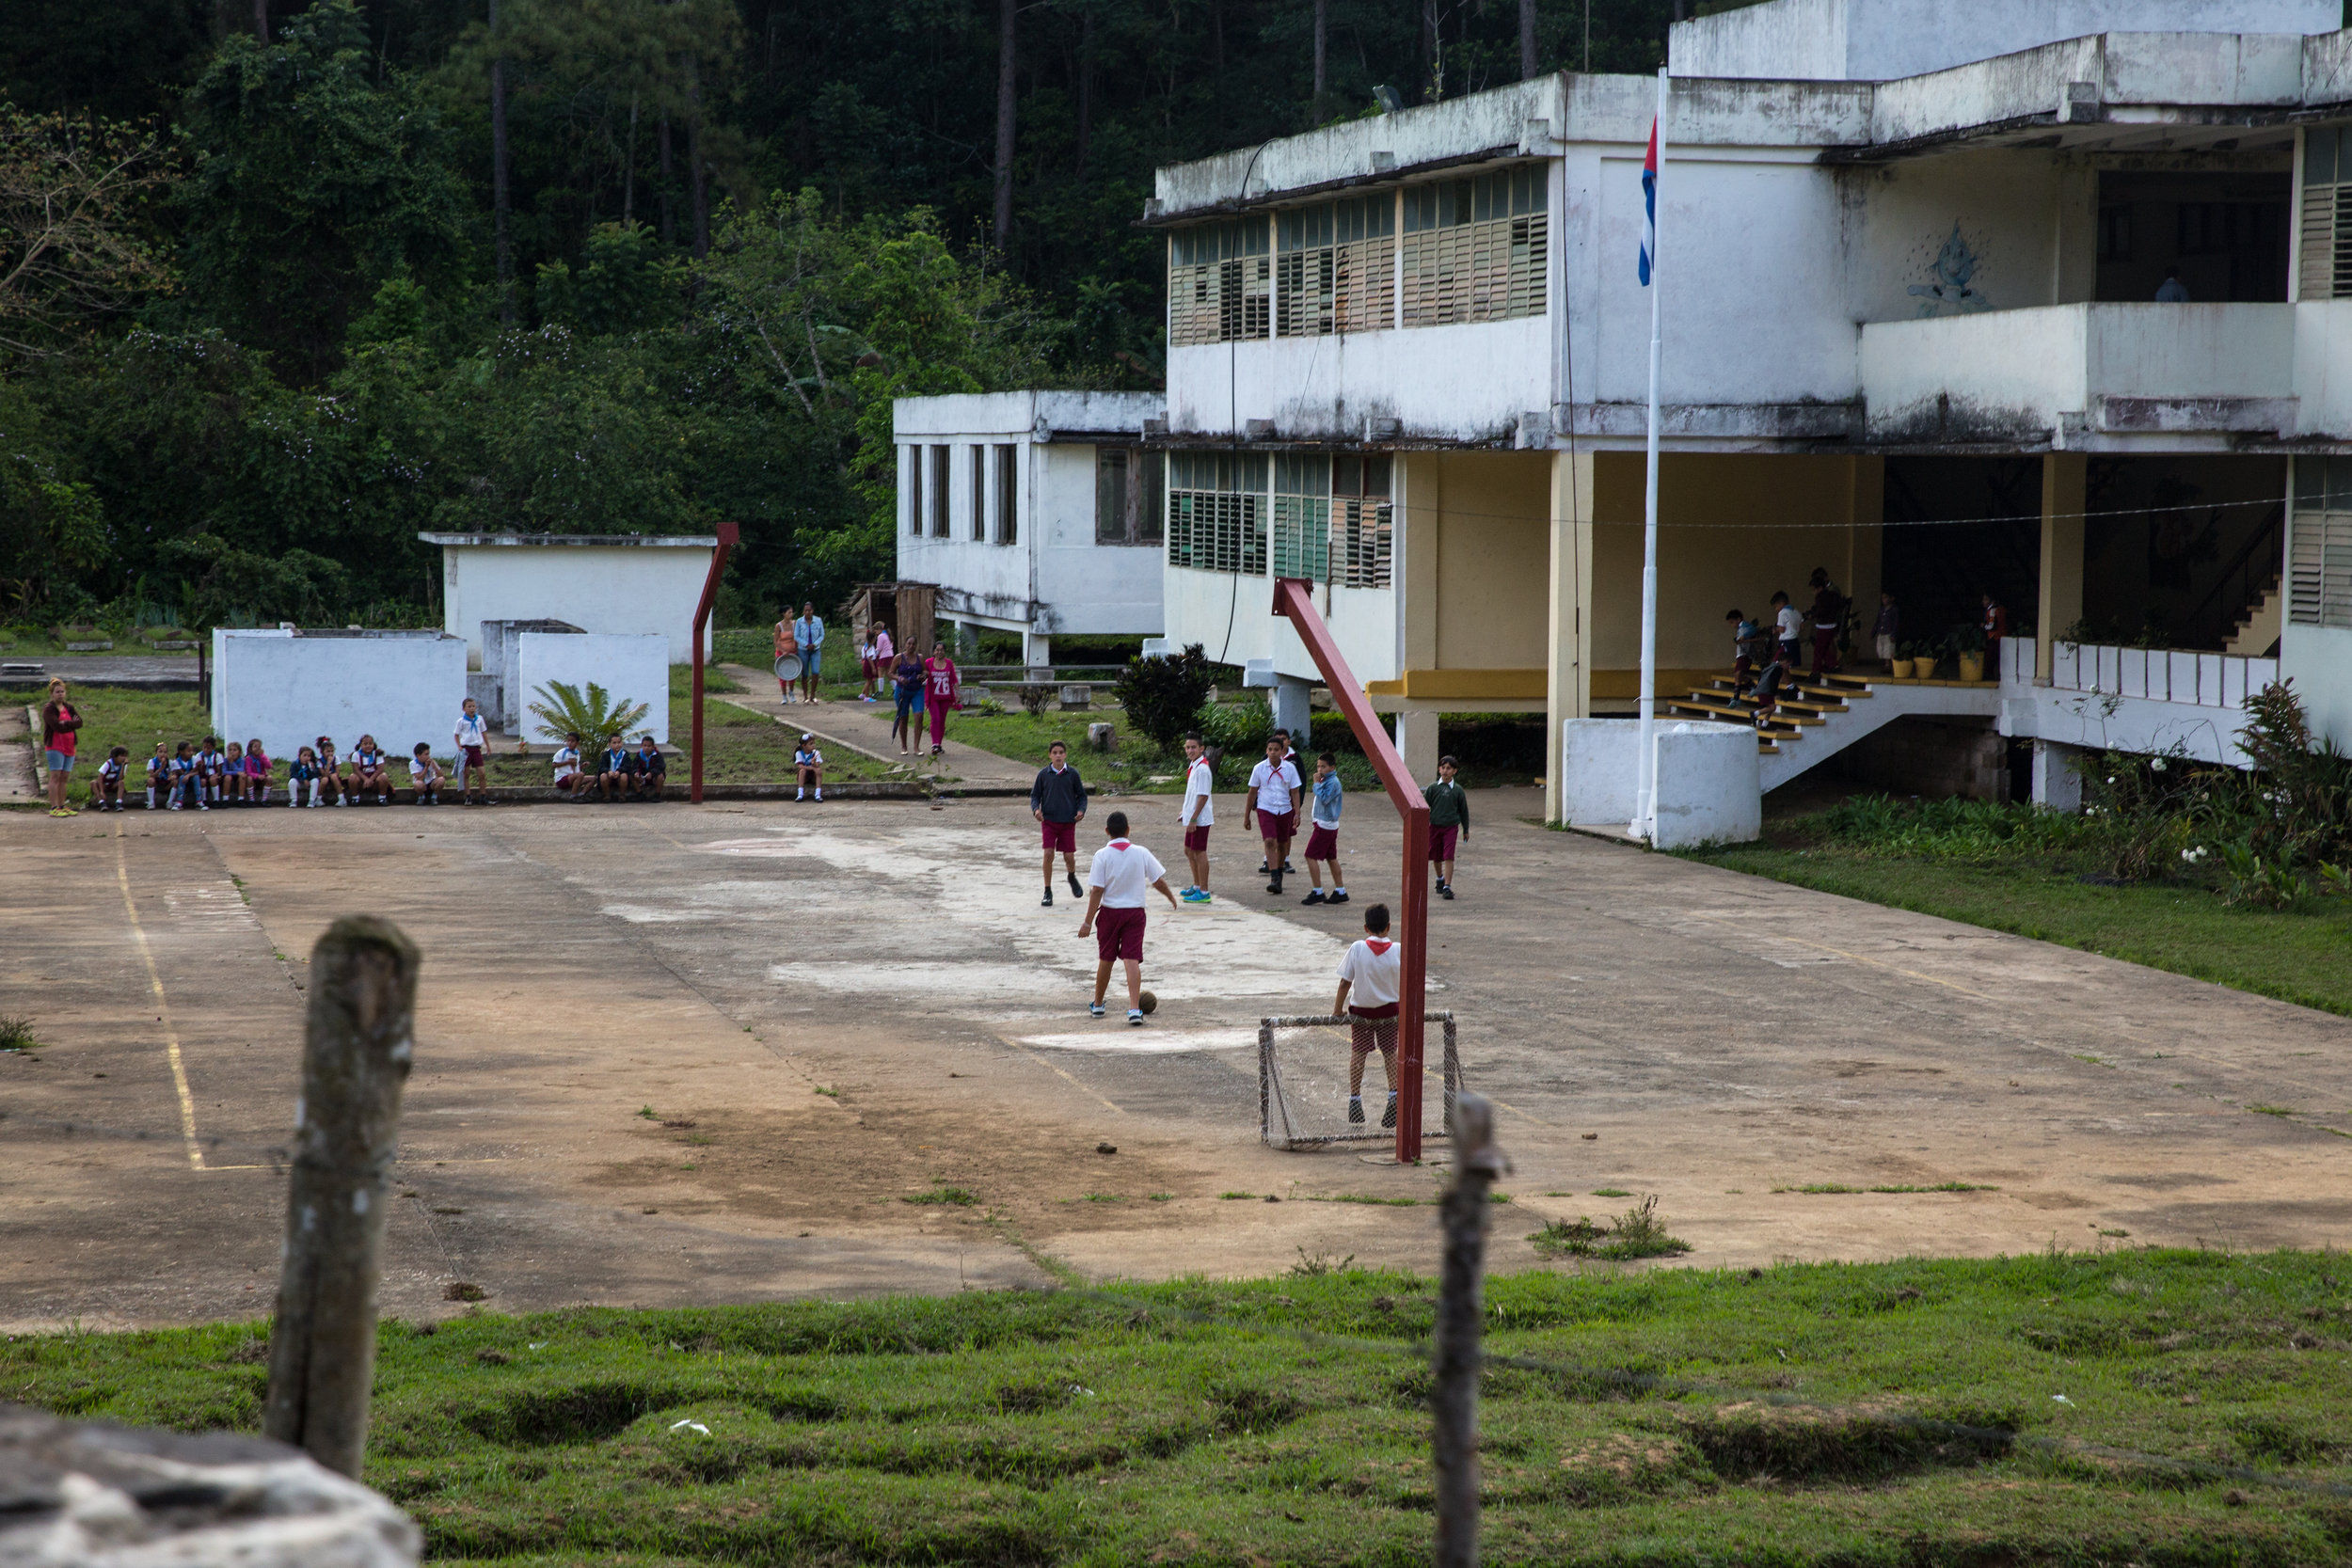 Kids play at school while we trek through the Escambray mountains.